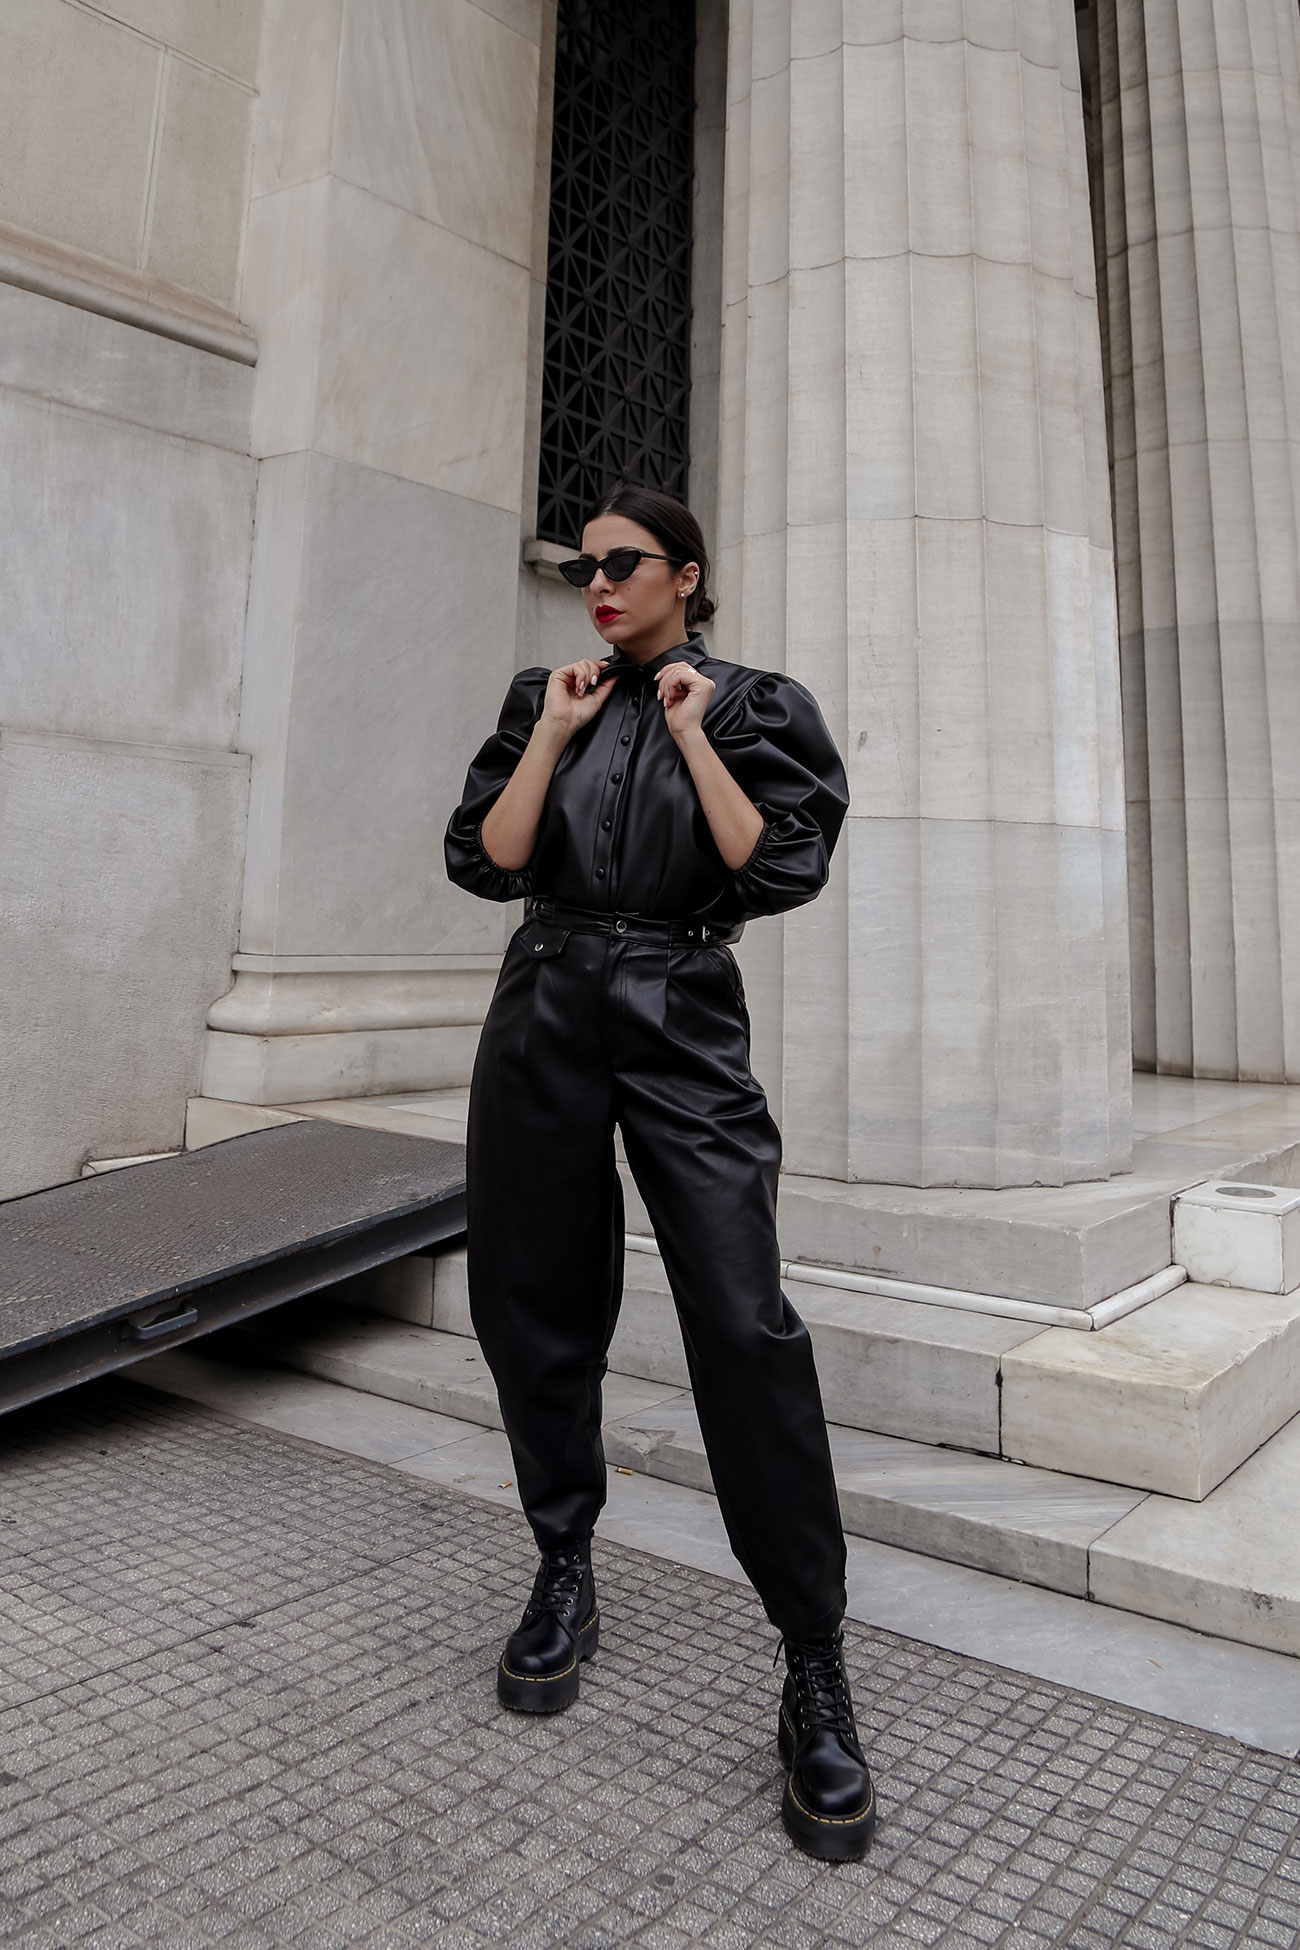 head-to-toe leather look by Stella ASteria